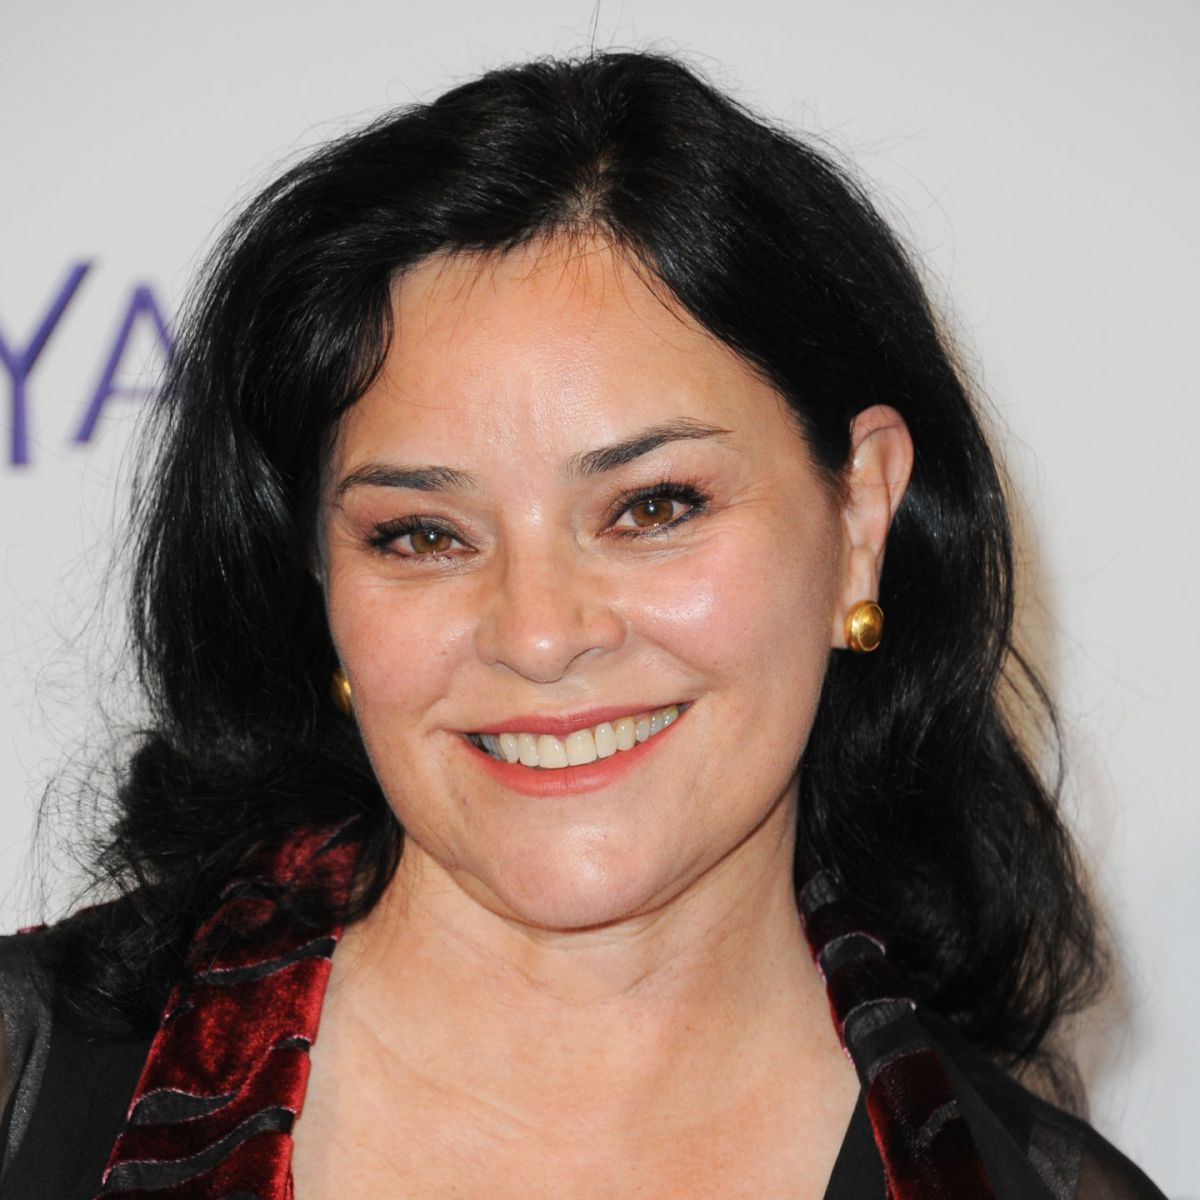 Diana Gabaldon Writer Dg Twitter Meet Diana Gabaldon This Sunday In Scottsdale Books